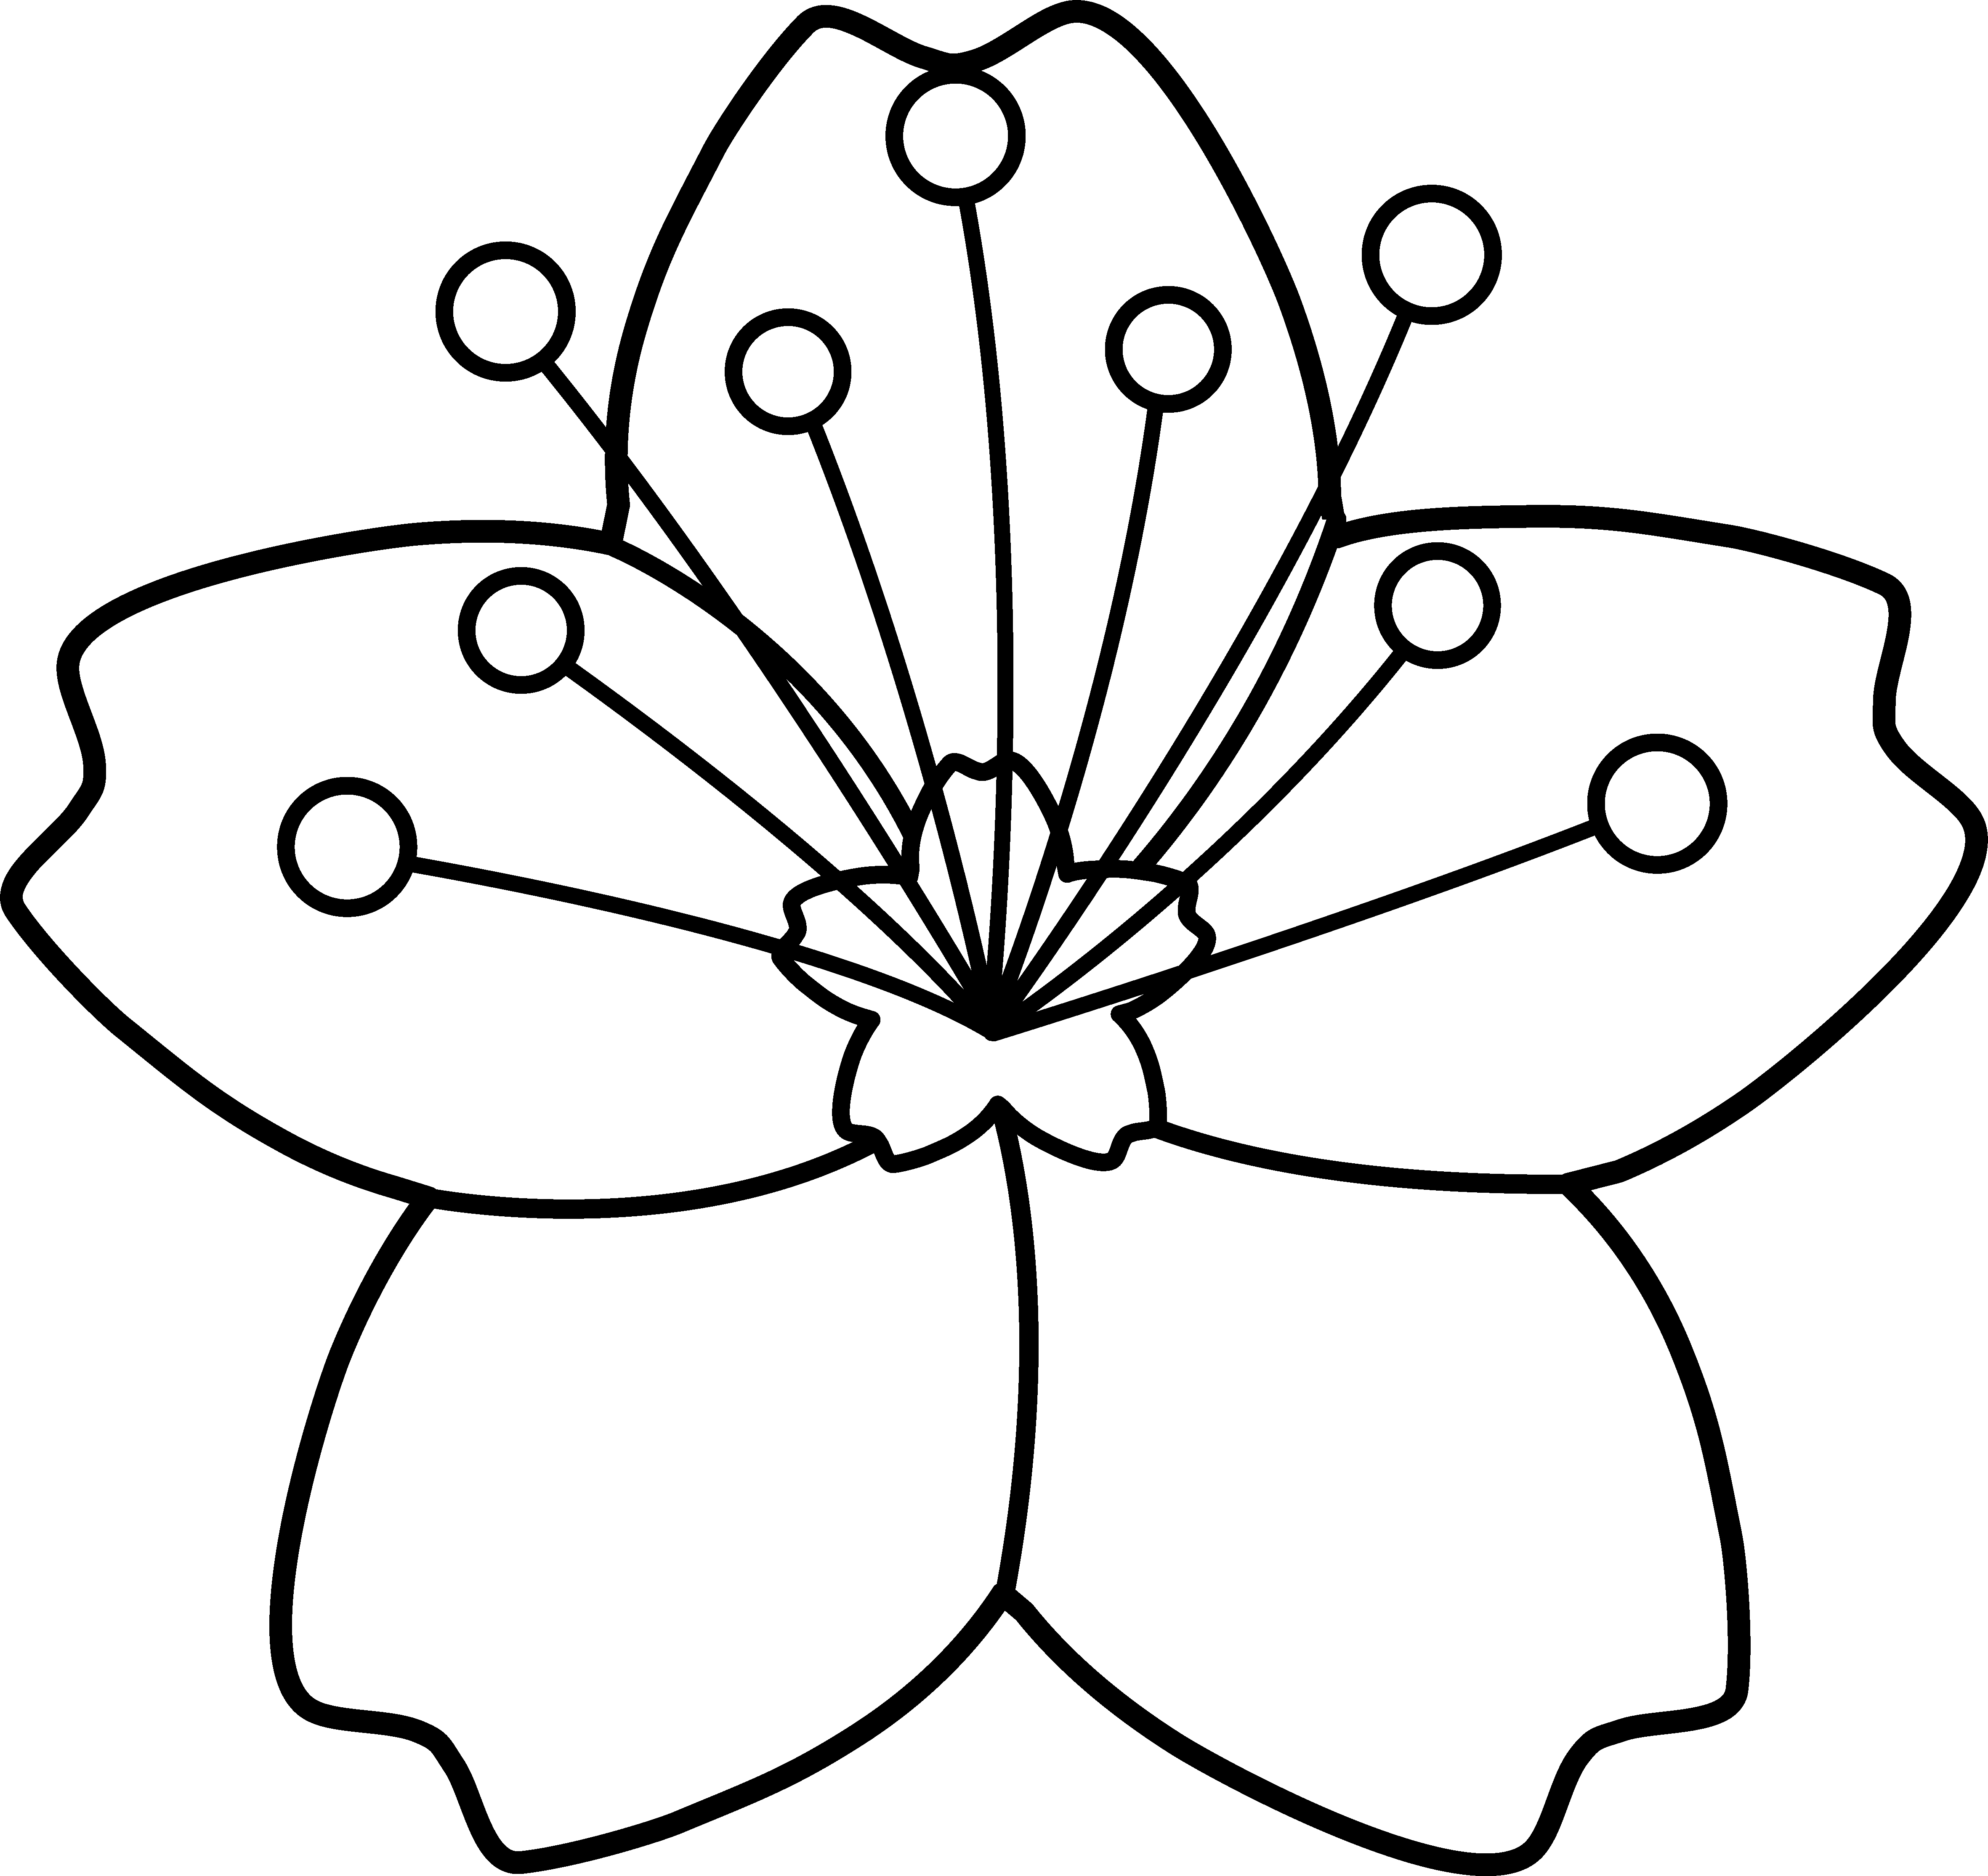 coloring outline images of flowers flower outline pictures clipartsco of coloring images outline flowers